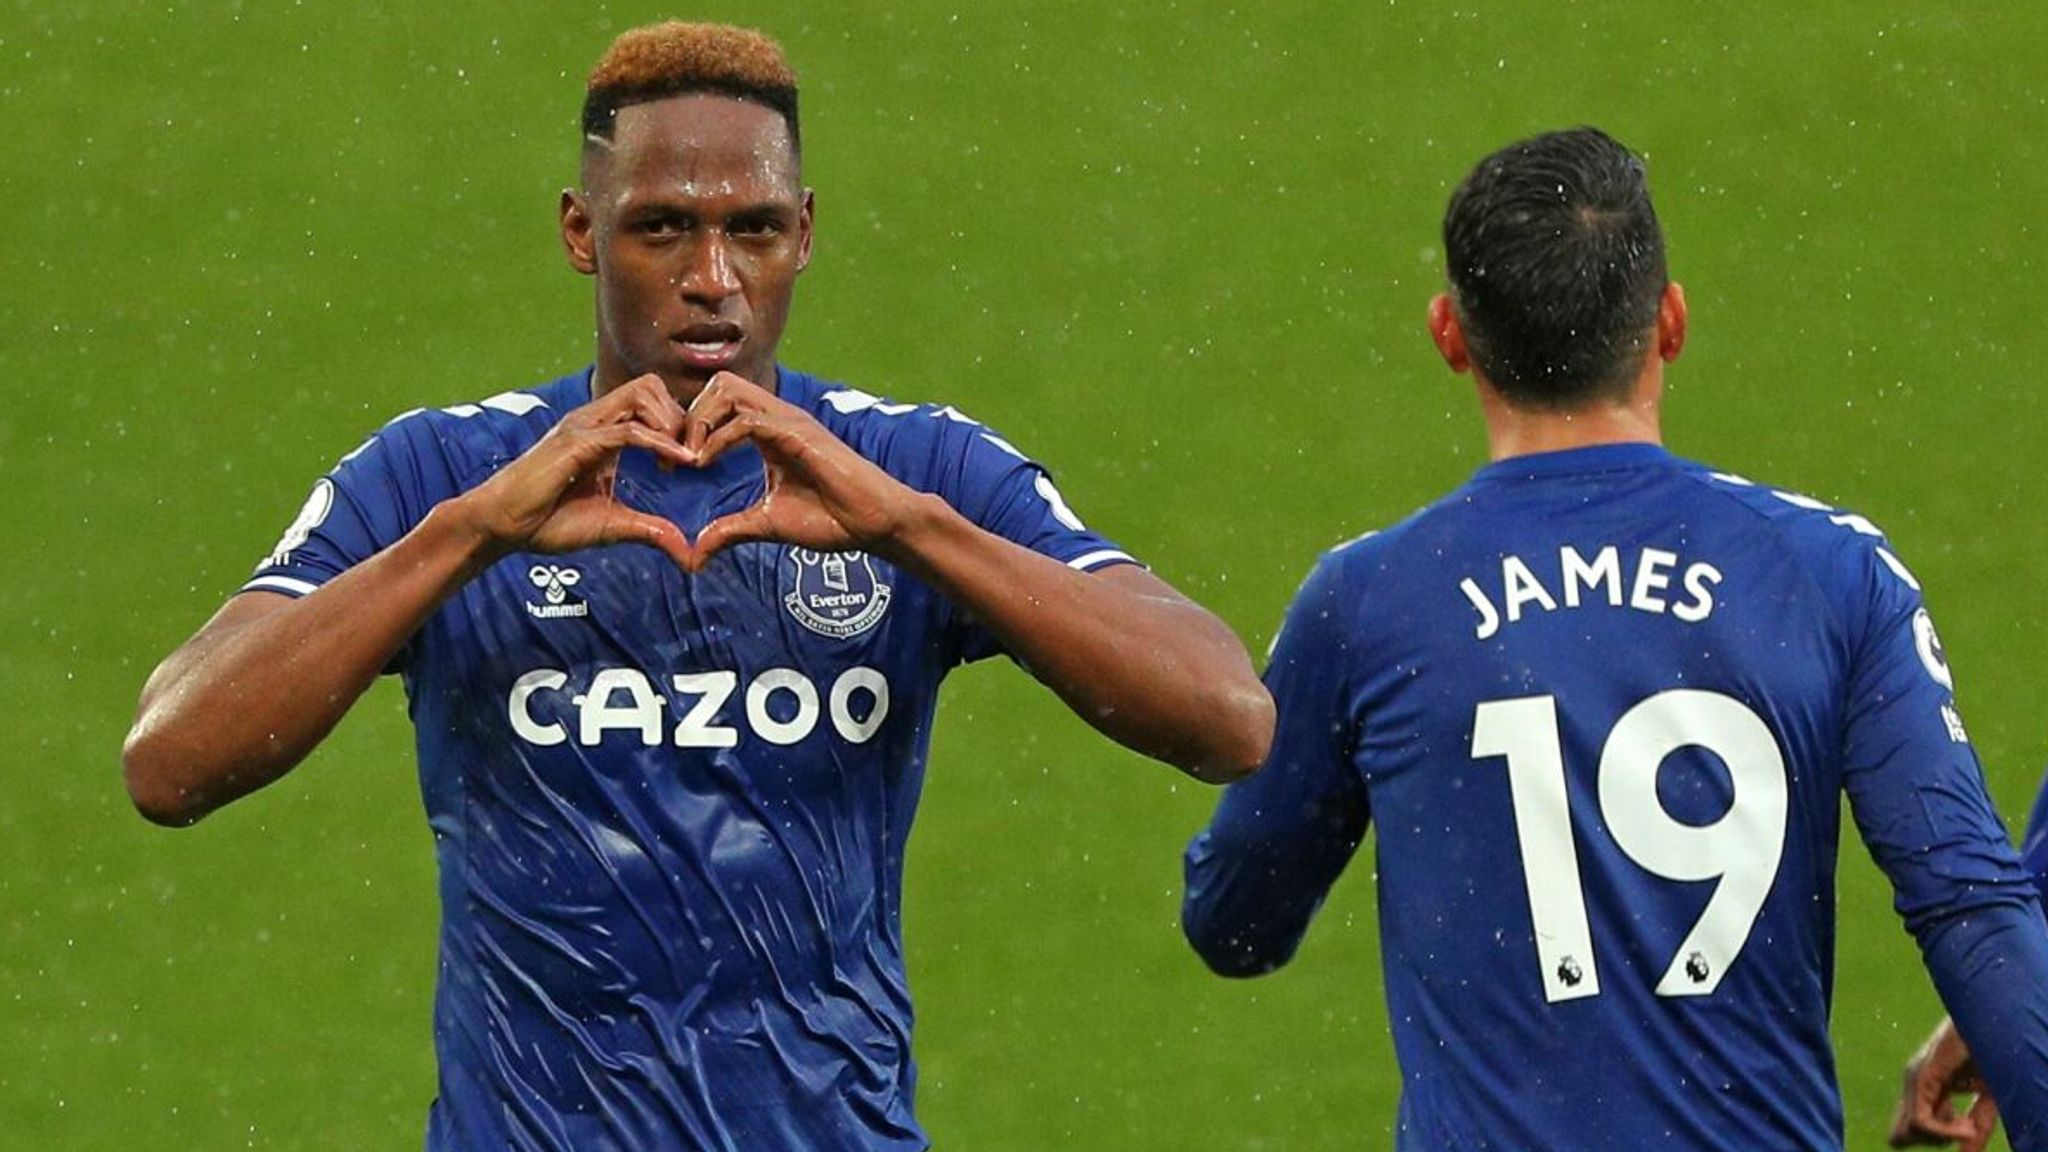 Jones Knows Back Everton Defender Yerry Mina To Head Home At 18 1 Against Southampton Football News Sky Sports